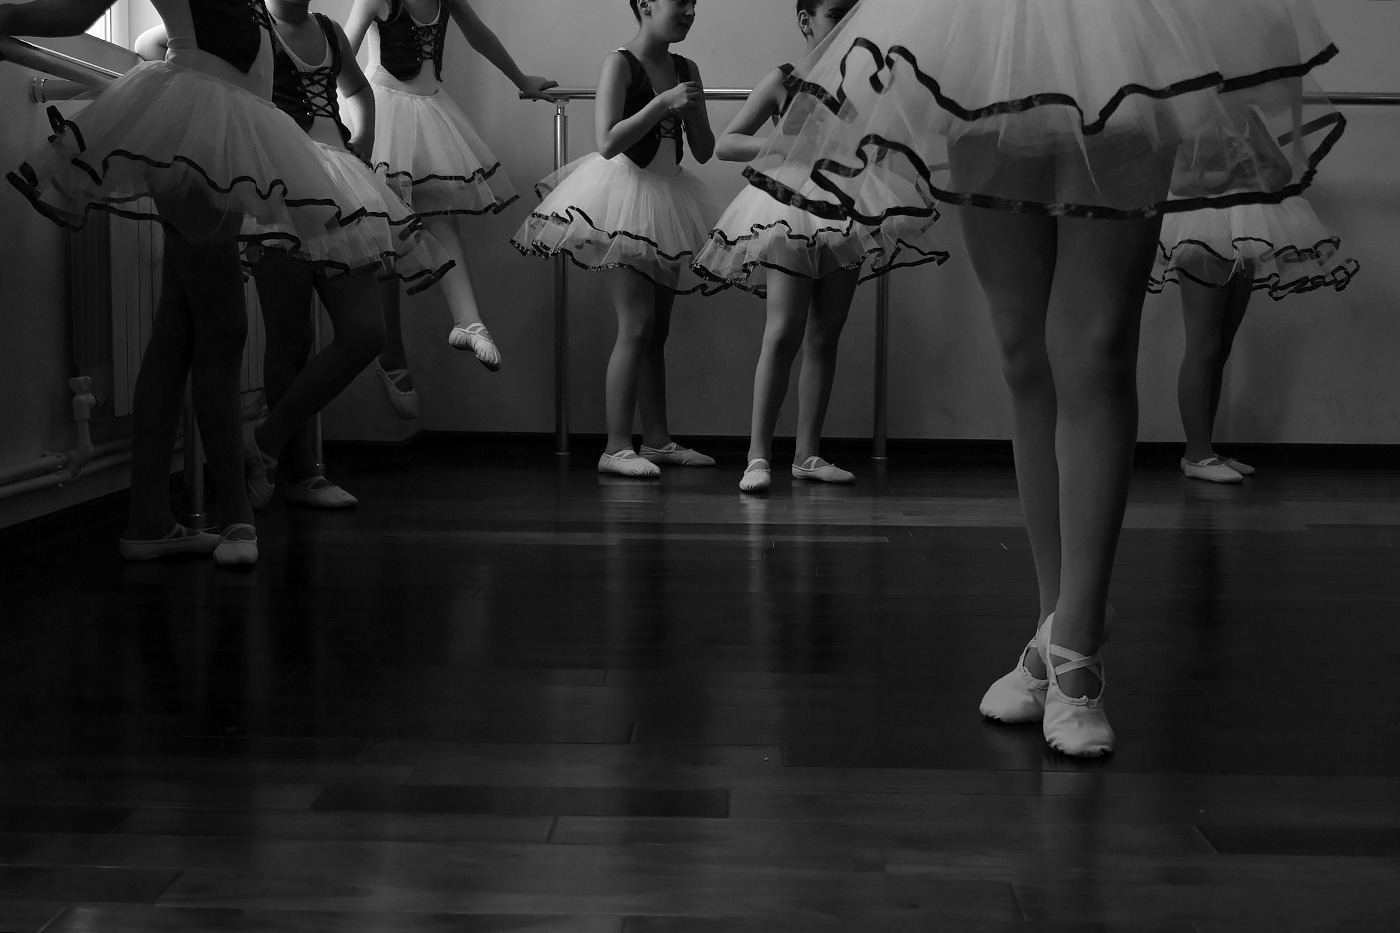 DSC 1347 - Photostory from Gyumri's Ballet School